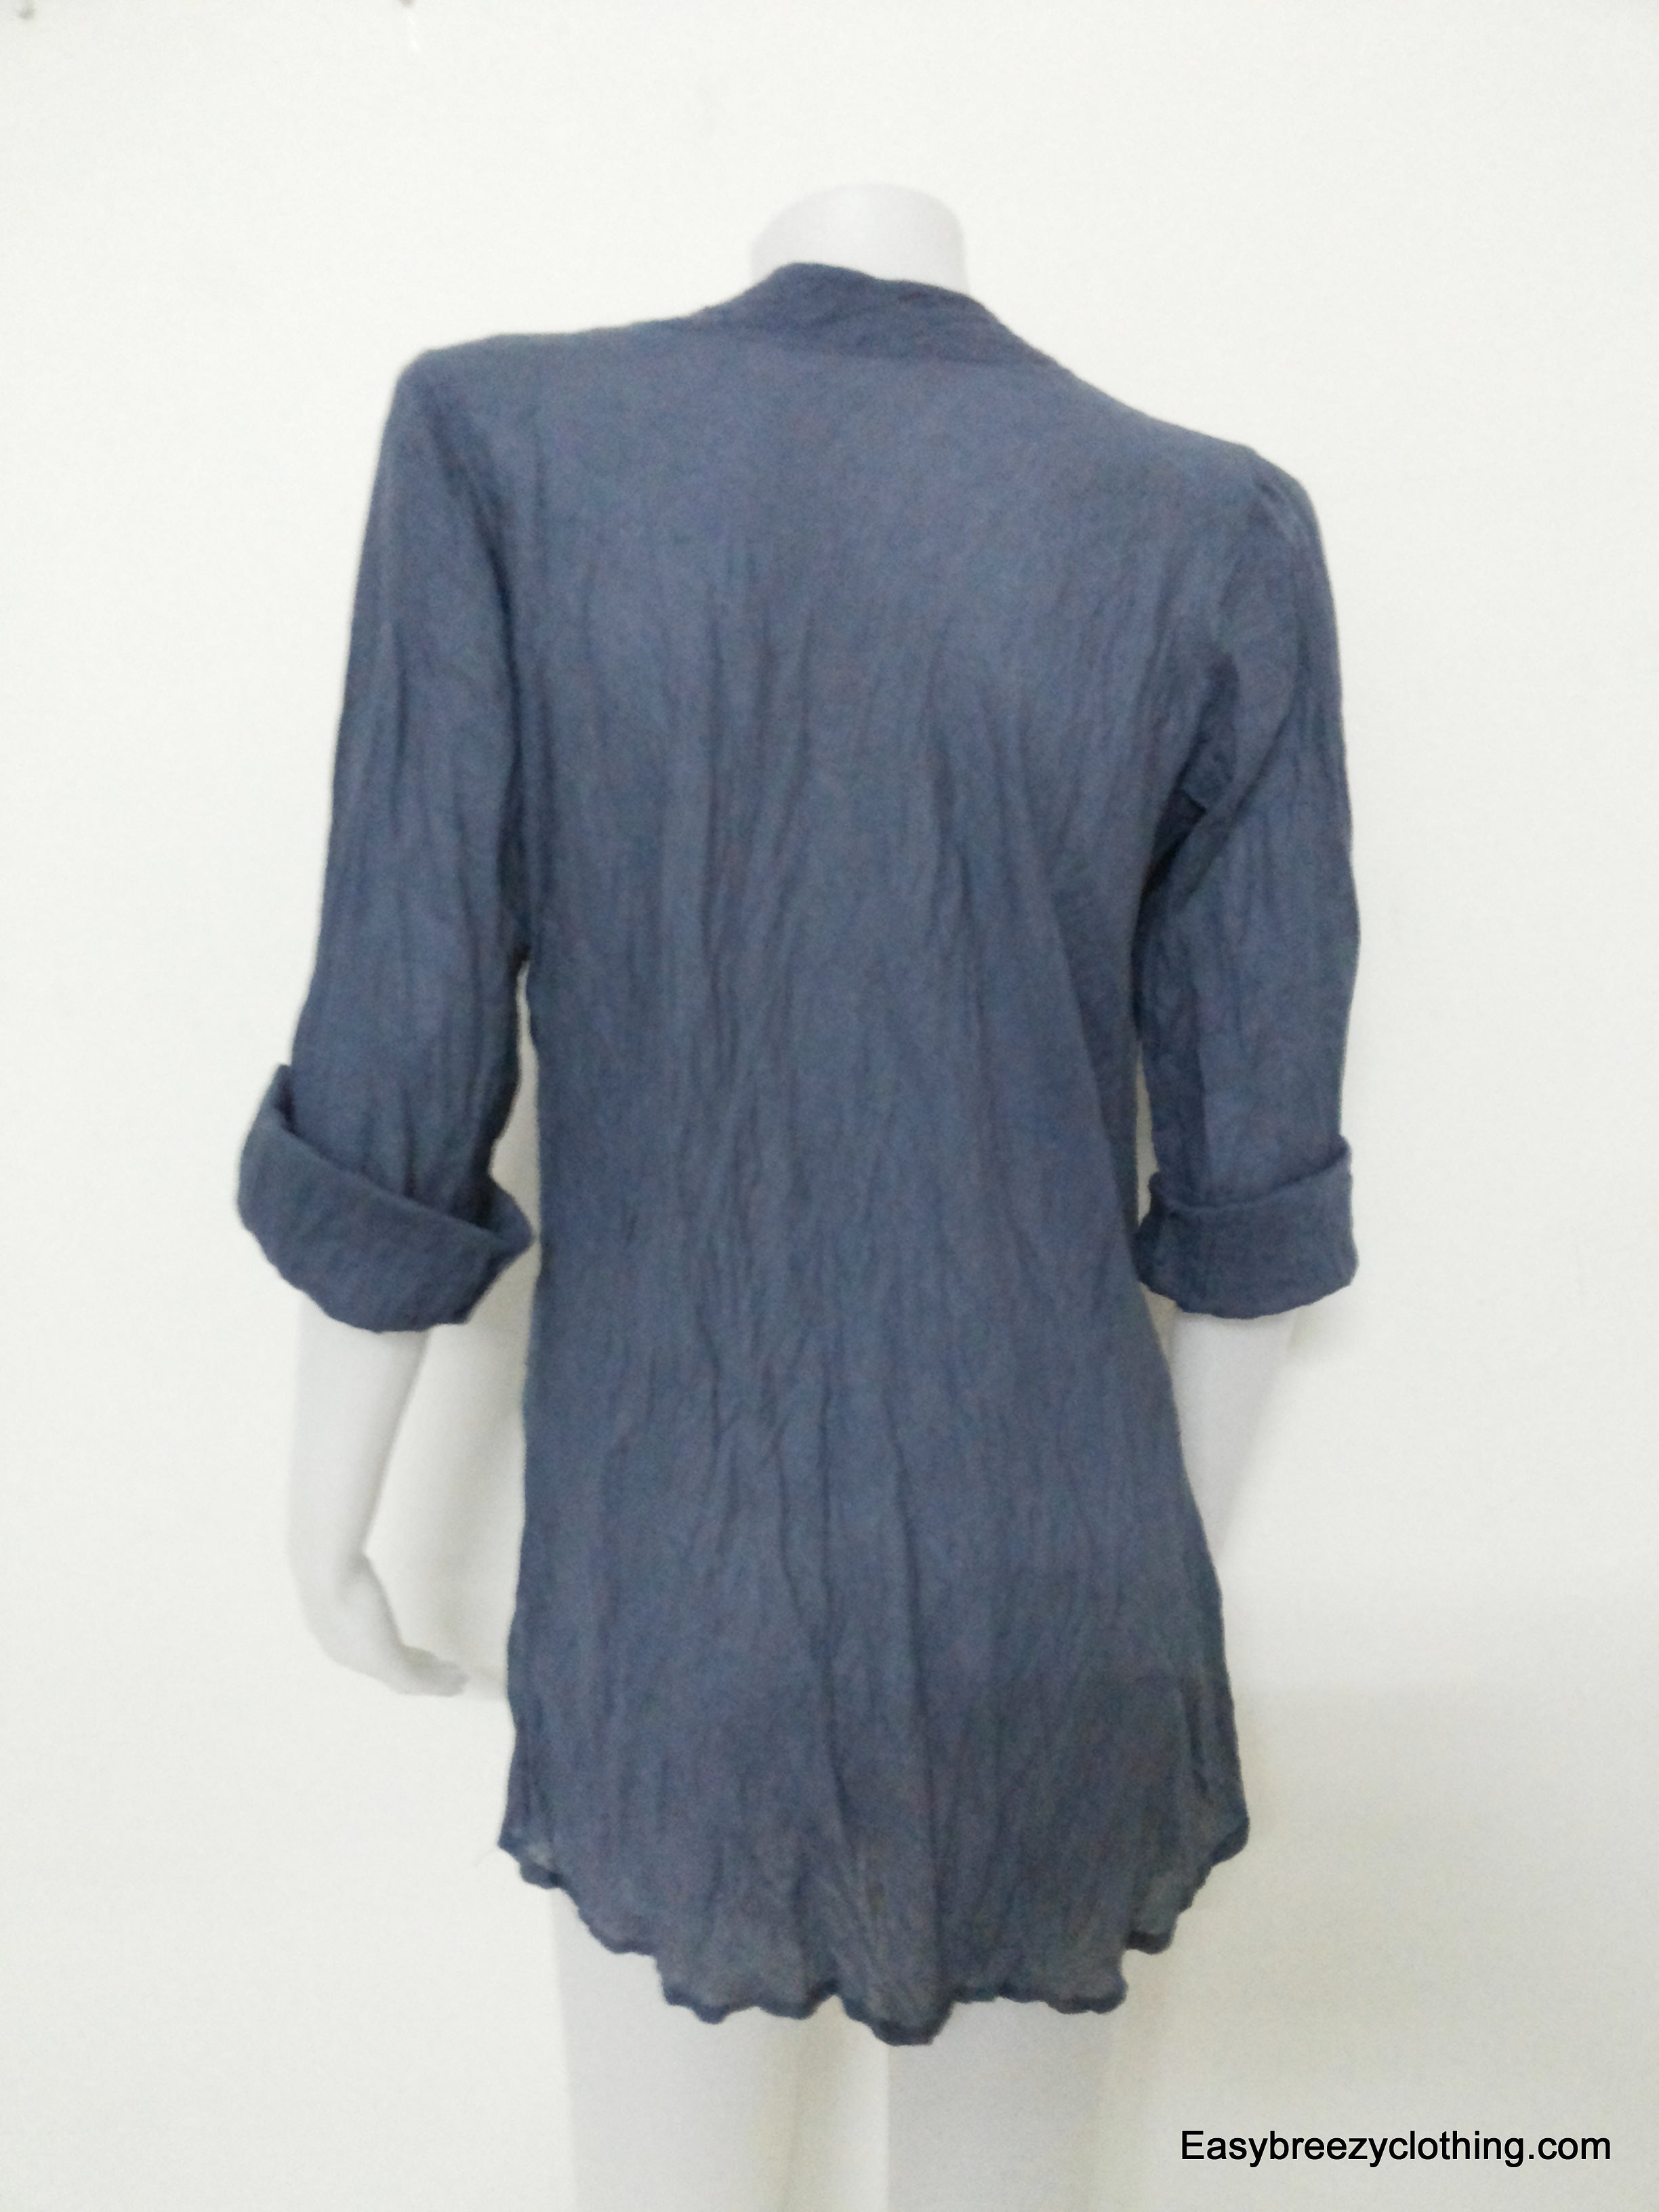 Scoop Neck Top,Cotton Blouses and Tunics,[Easy Breezy Clothing]